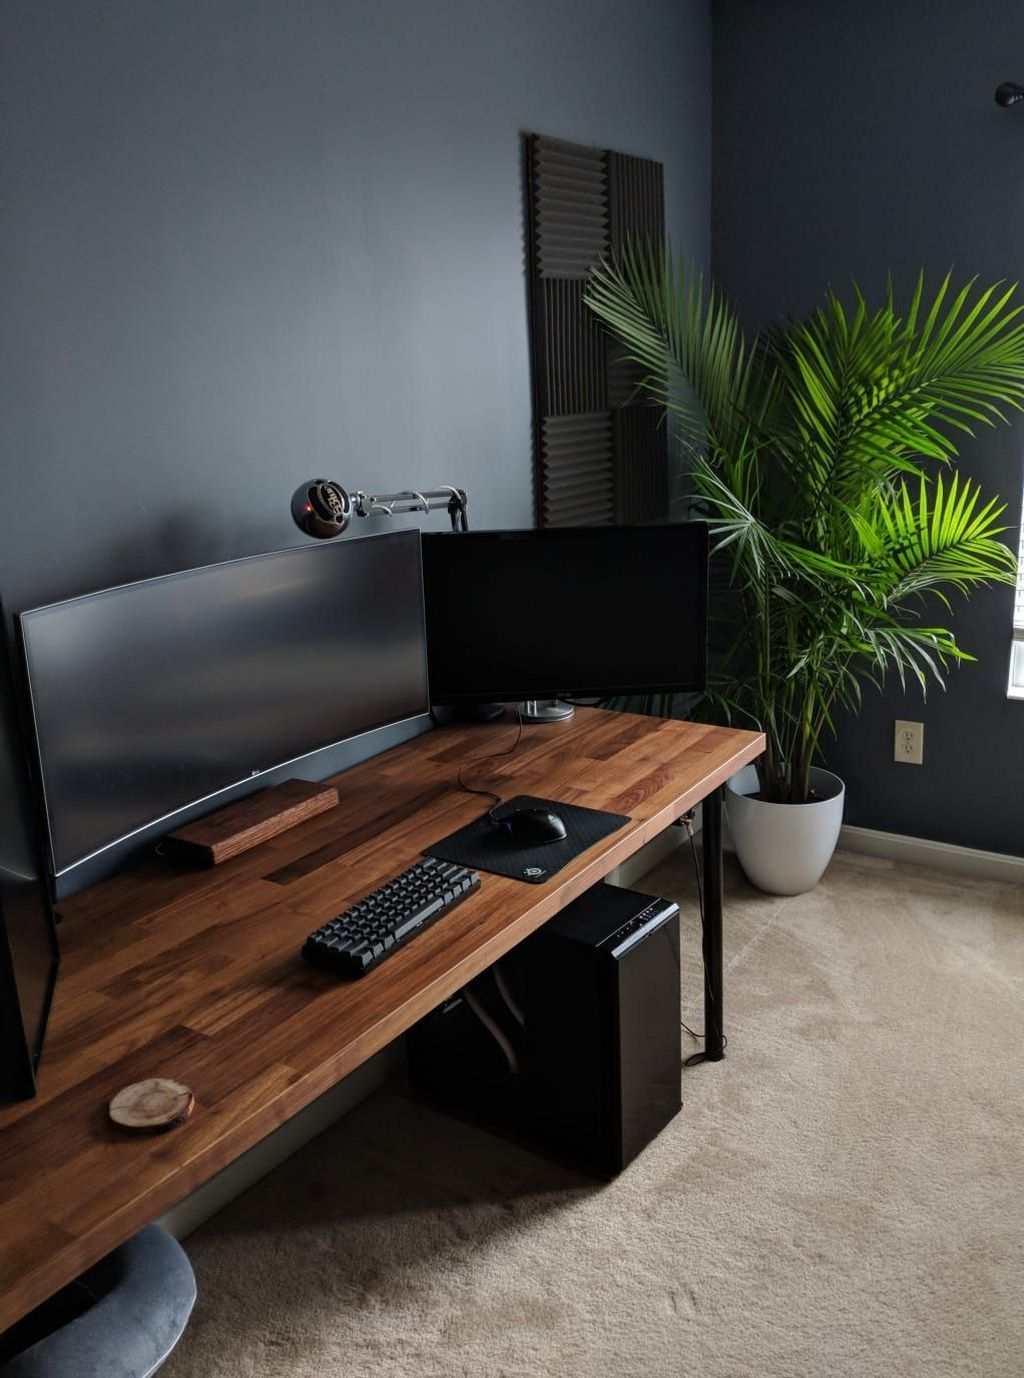 Stunning Gaming Setup Ideas For Your Bedroom That Will Amaze You #gamingdesk